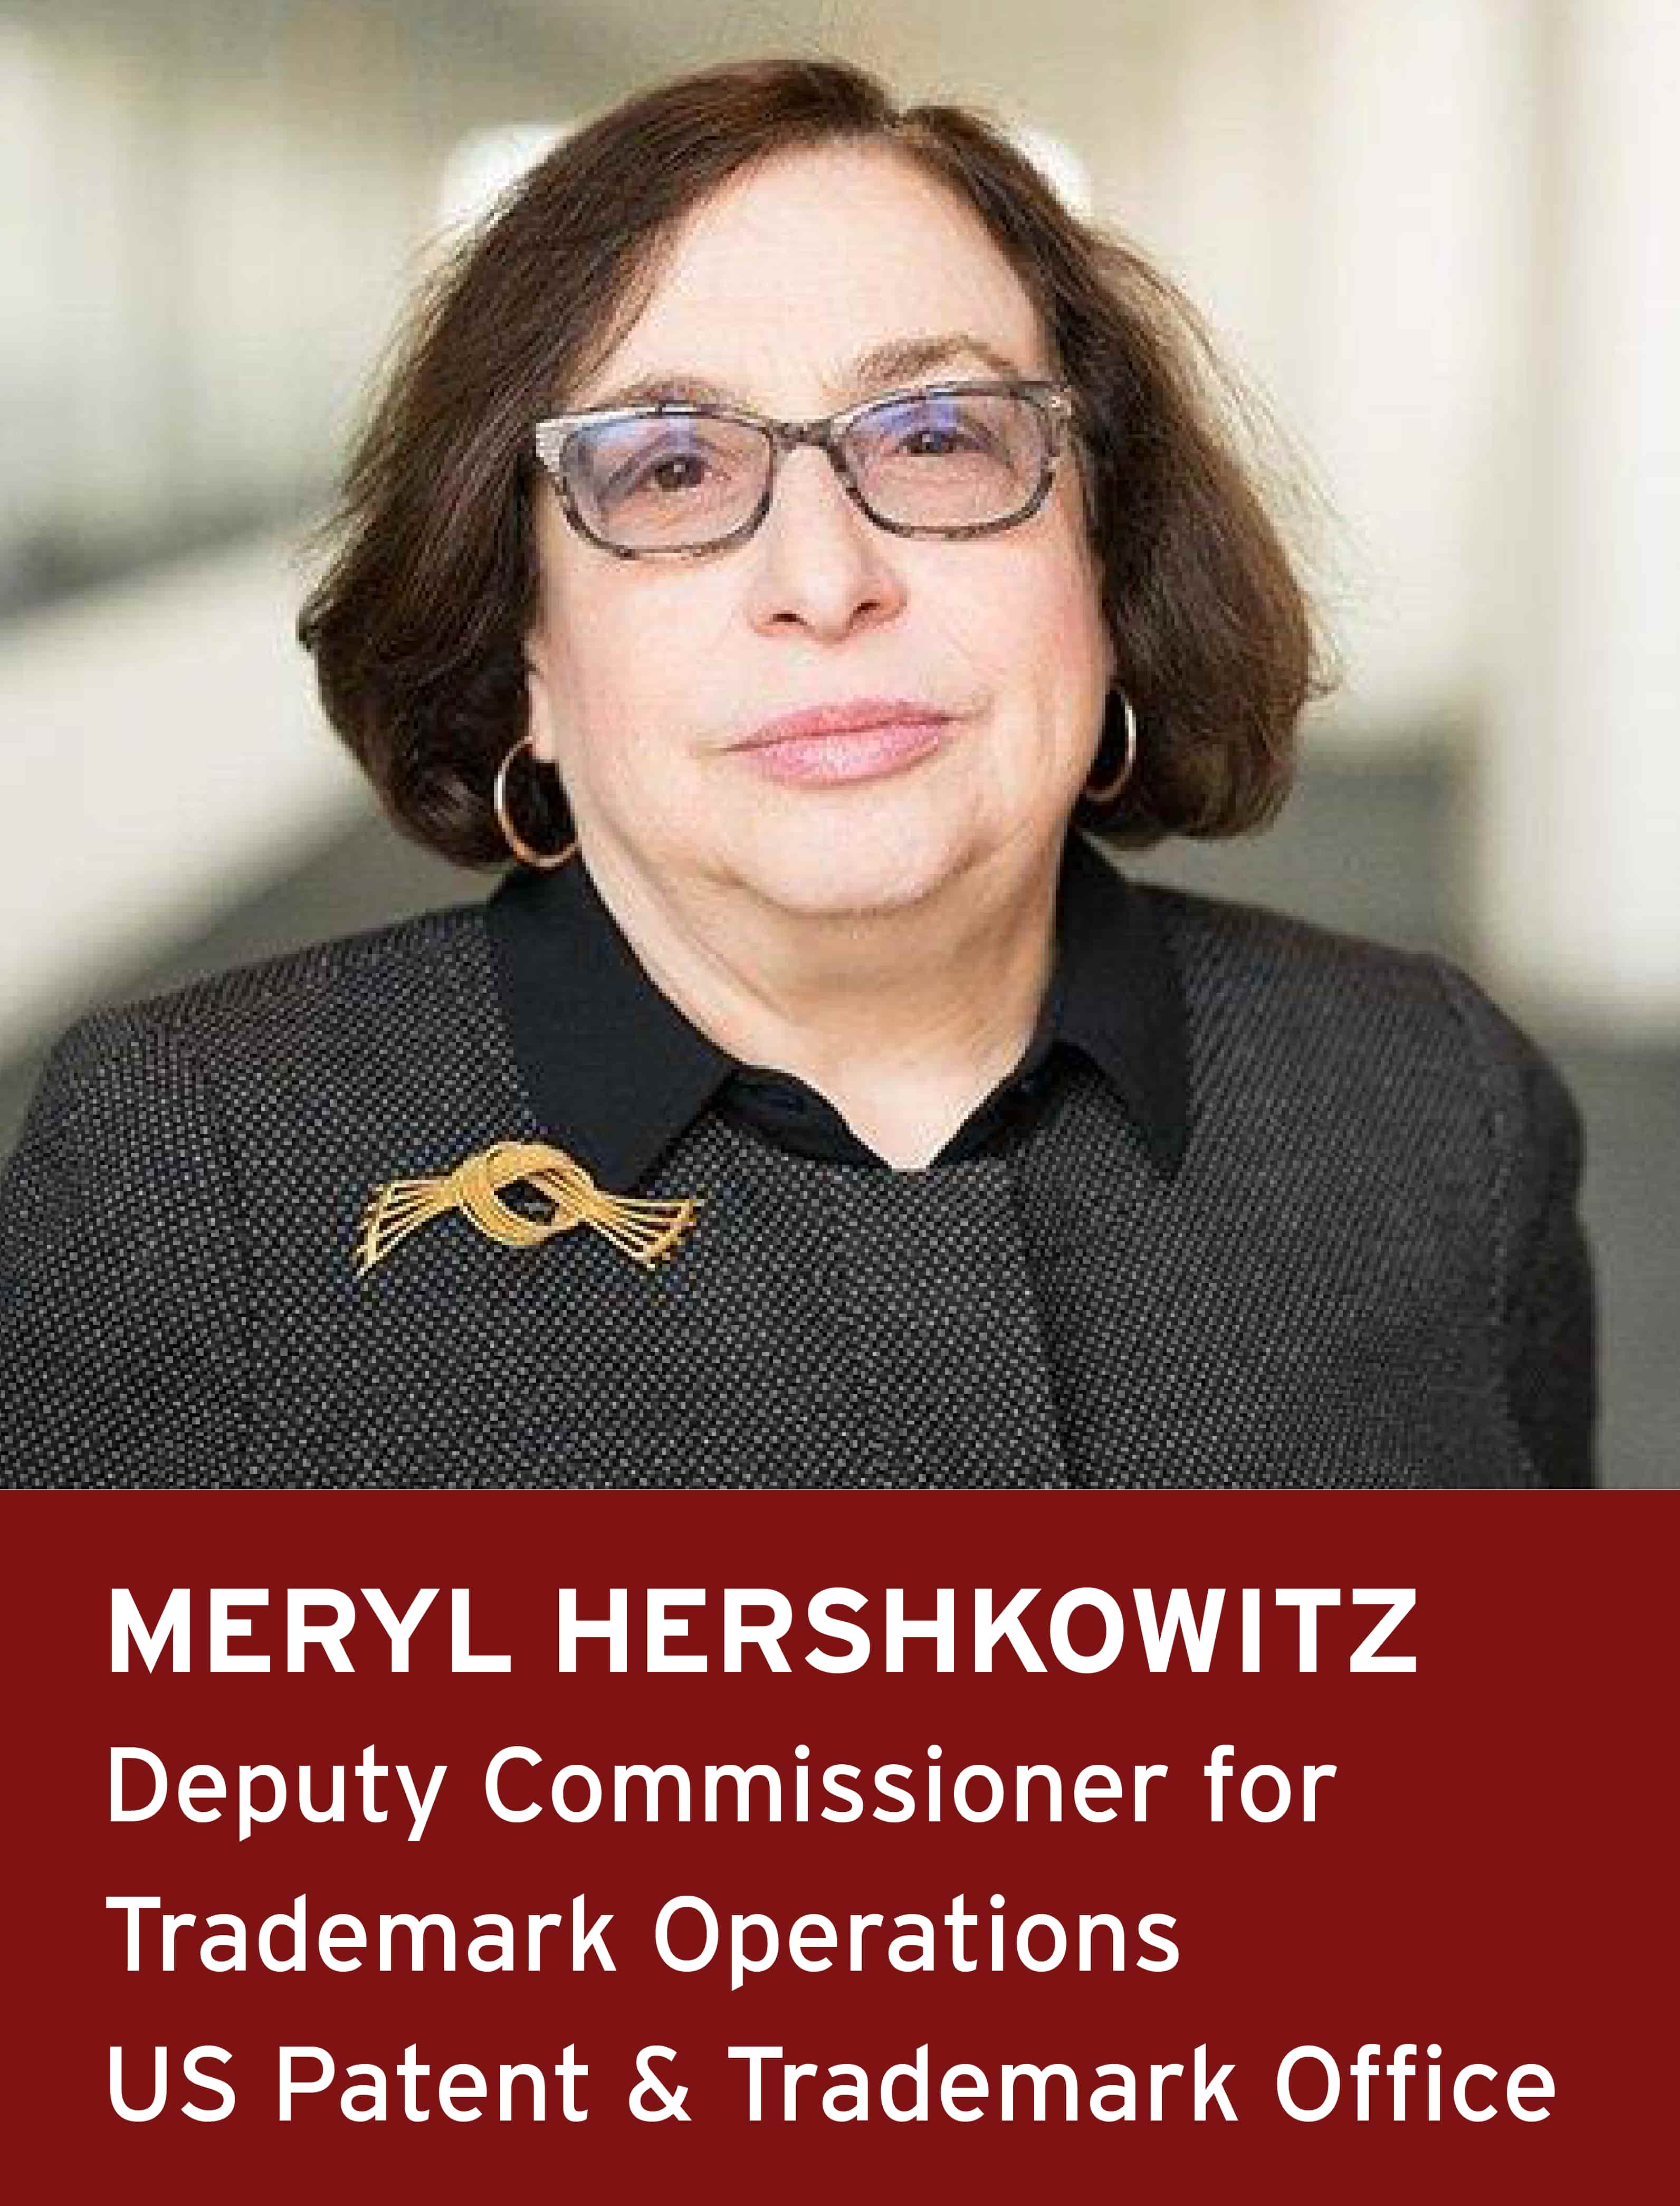 Meryl Hershkowitz, Deputy Commissioner for Trademark Operations, US Patent and Trademark Office